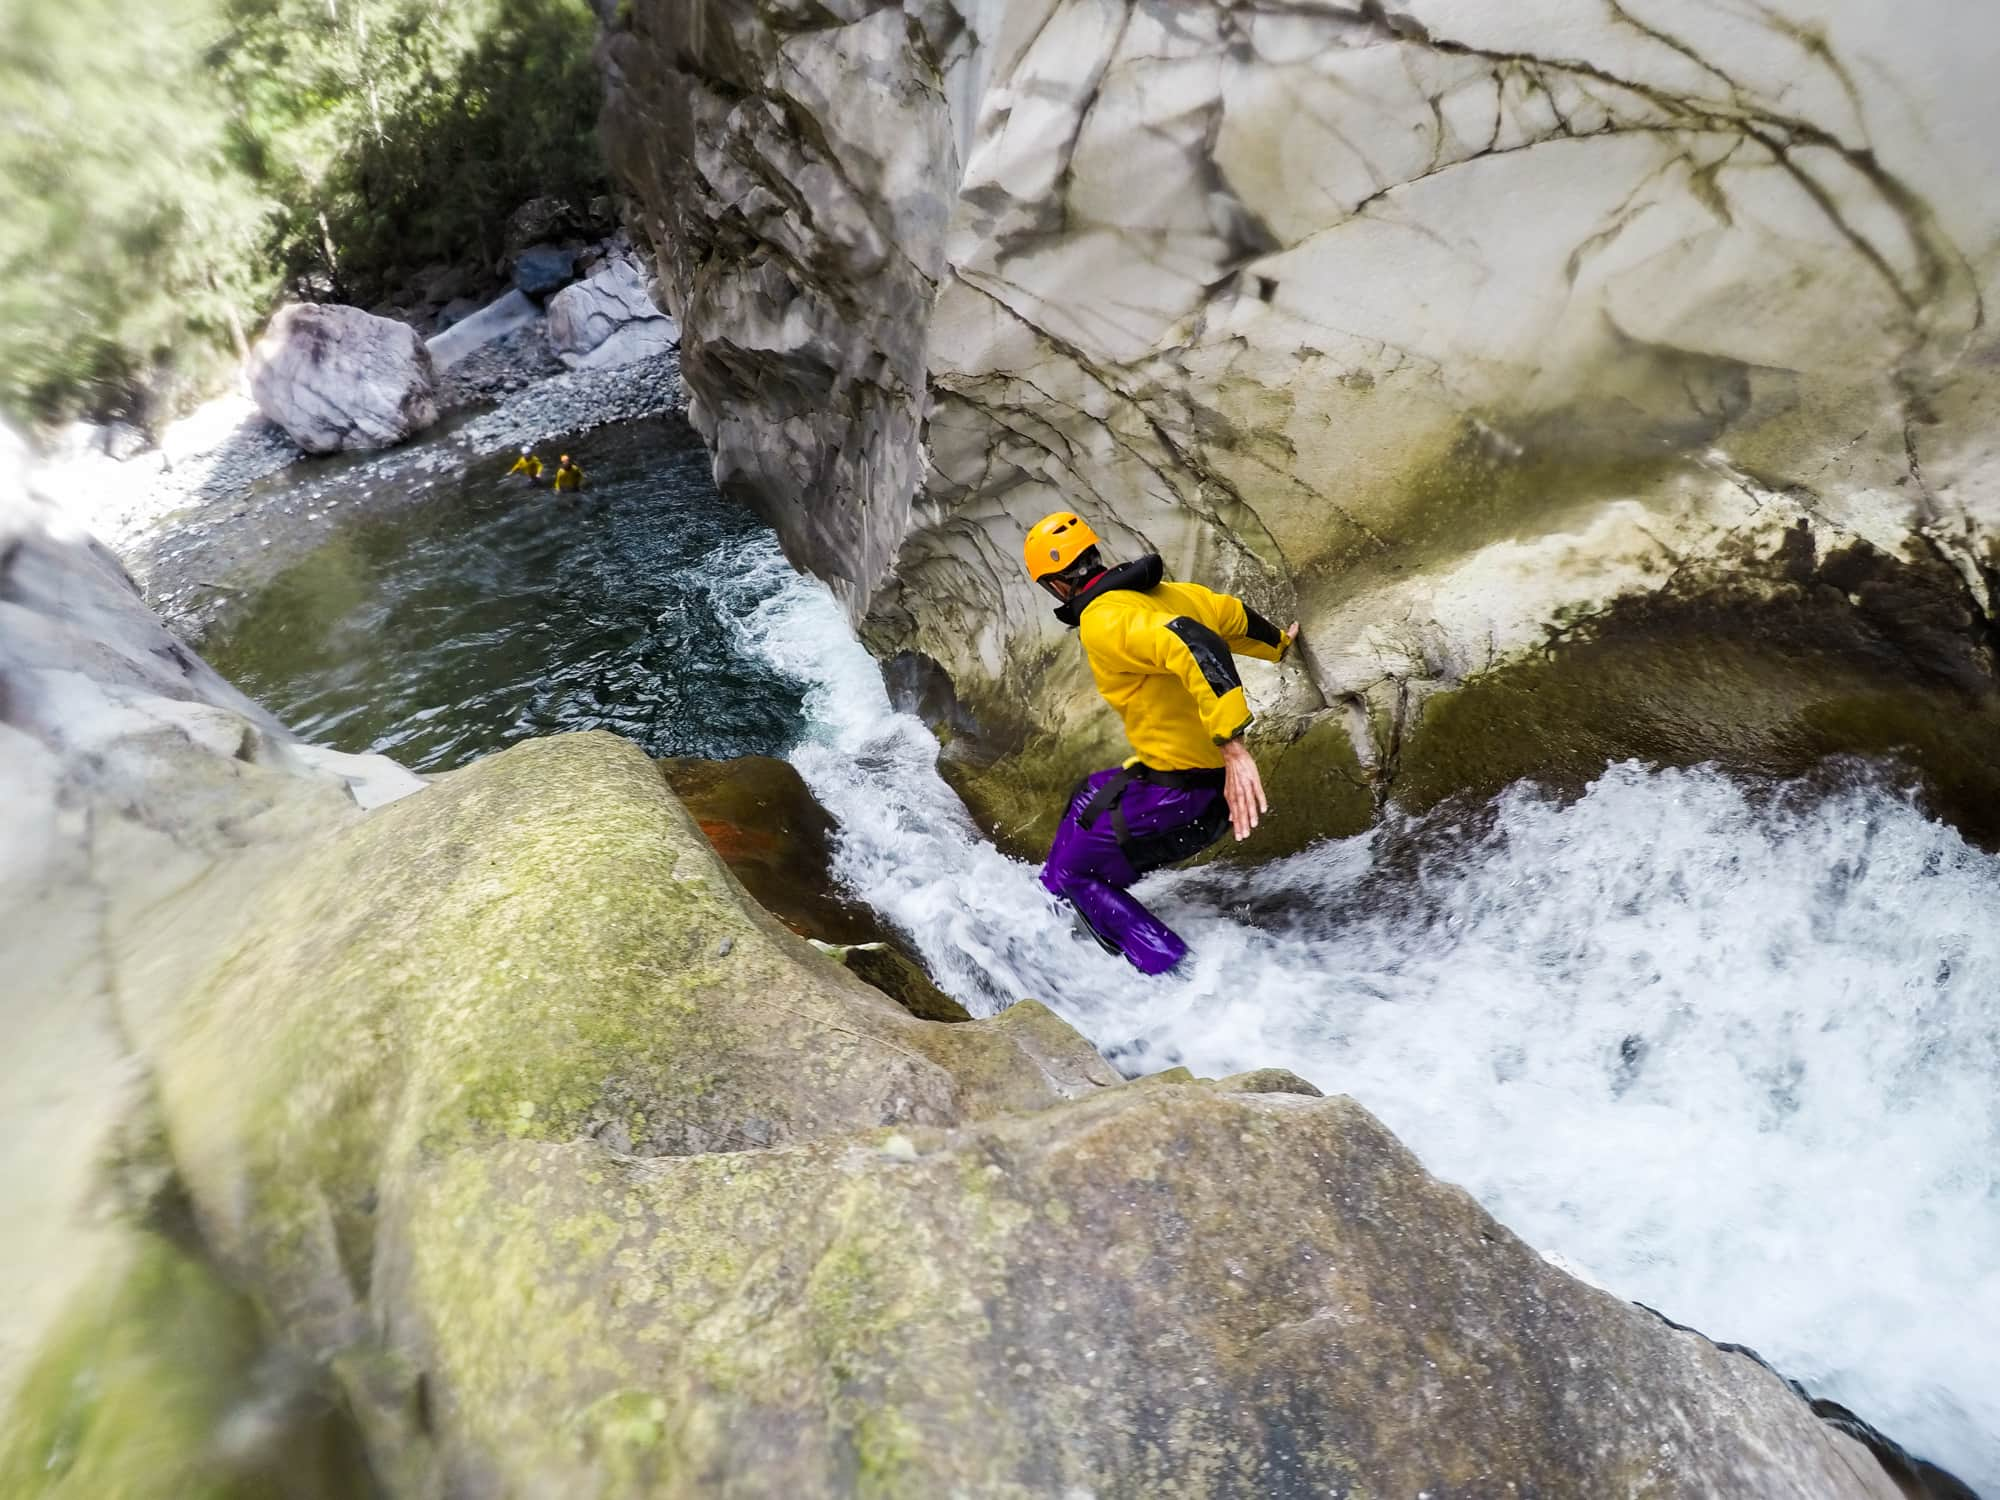 http://www.canyon-speleo.re/canyoning-reunion/canyoning-trou-blanc/